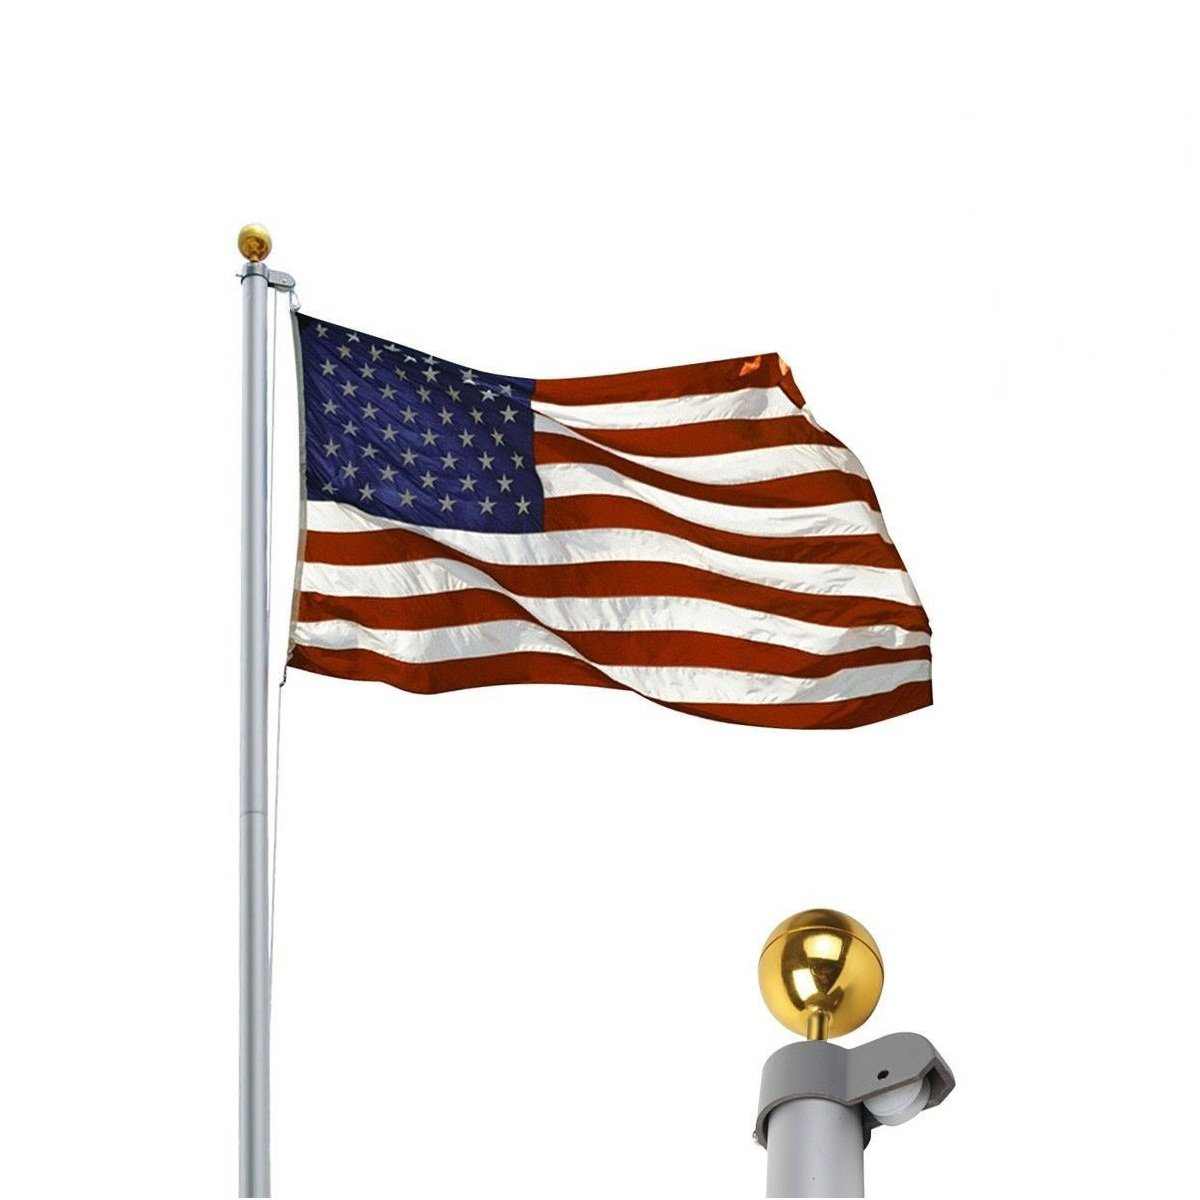 Halyard Rope 25FT Aluminum Sectional US Flagpole Kit America Flag w/ Gold Ball Finial